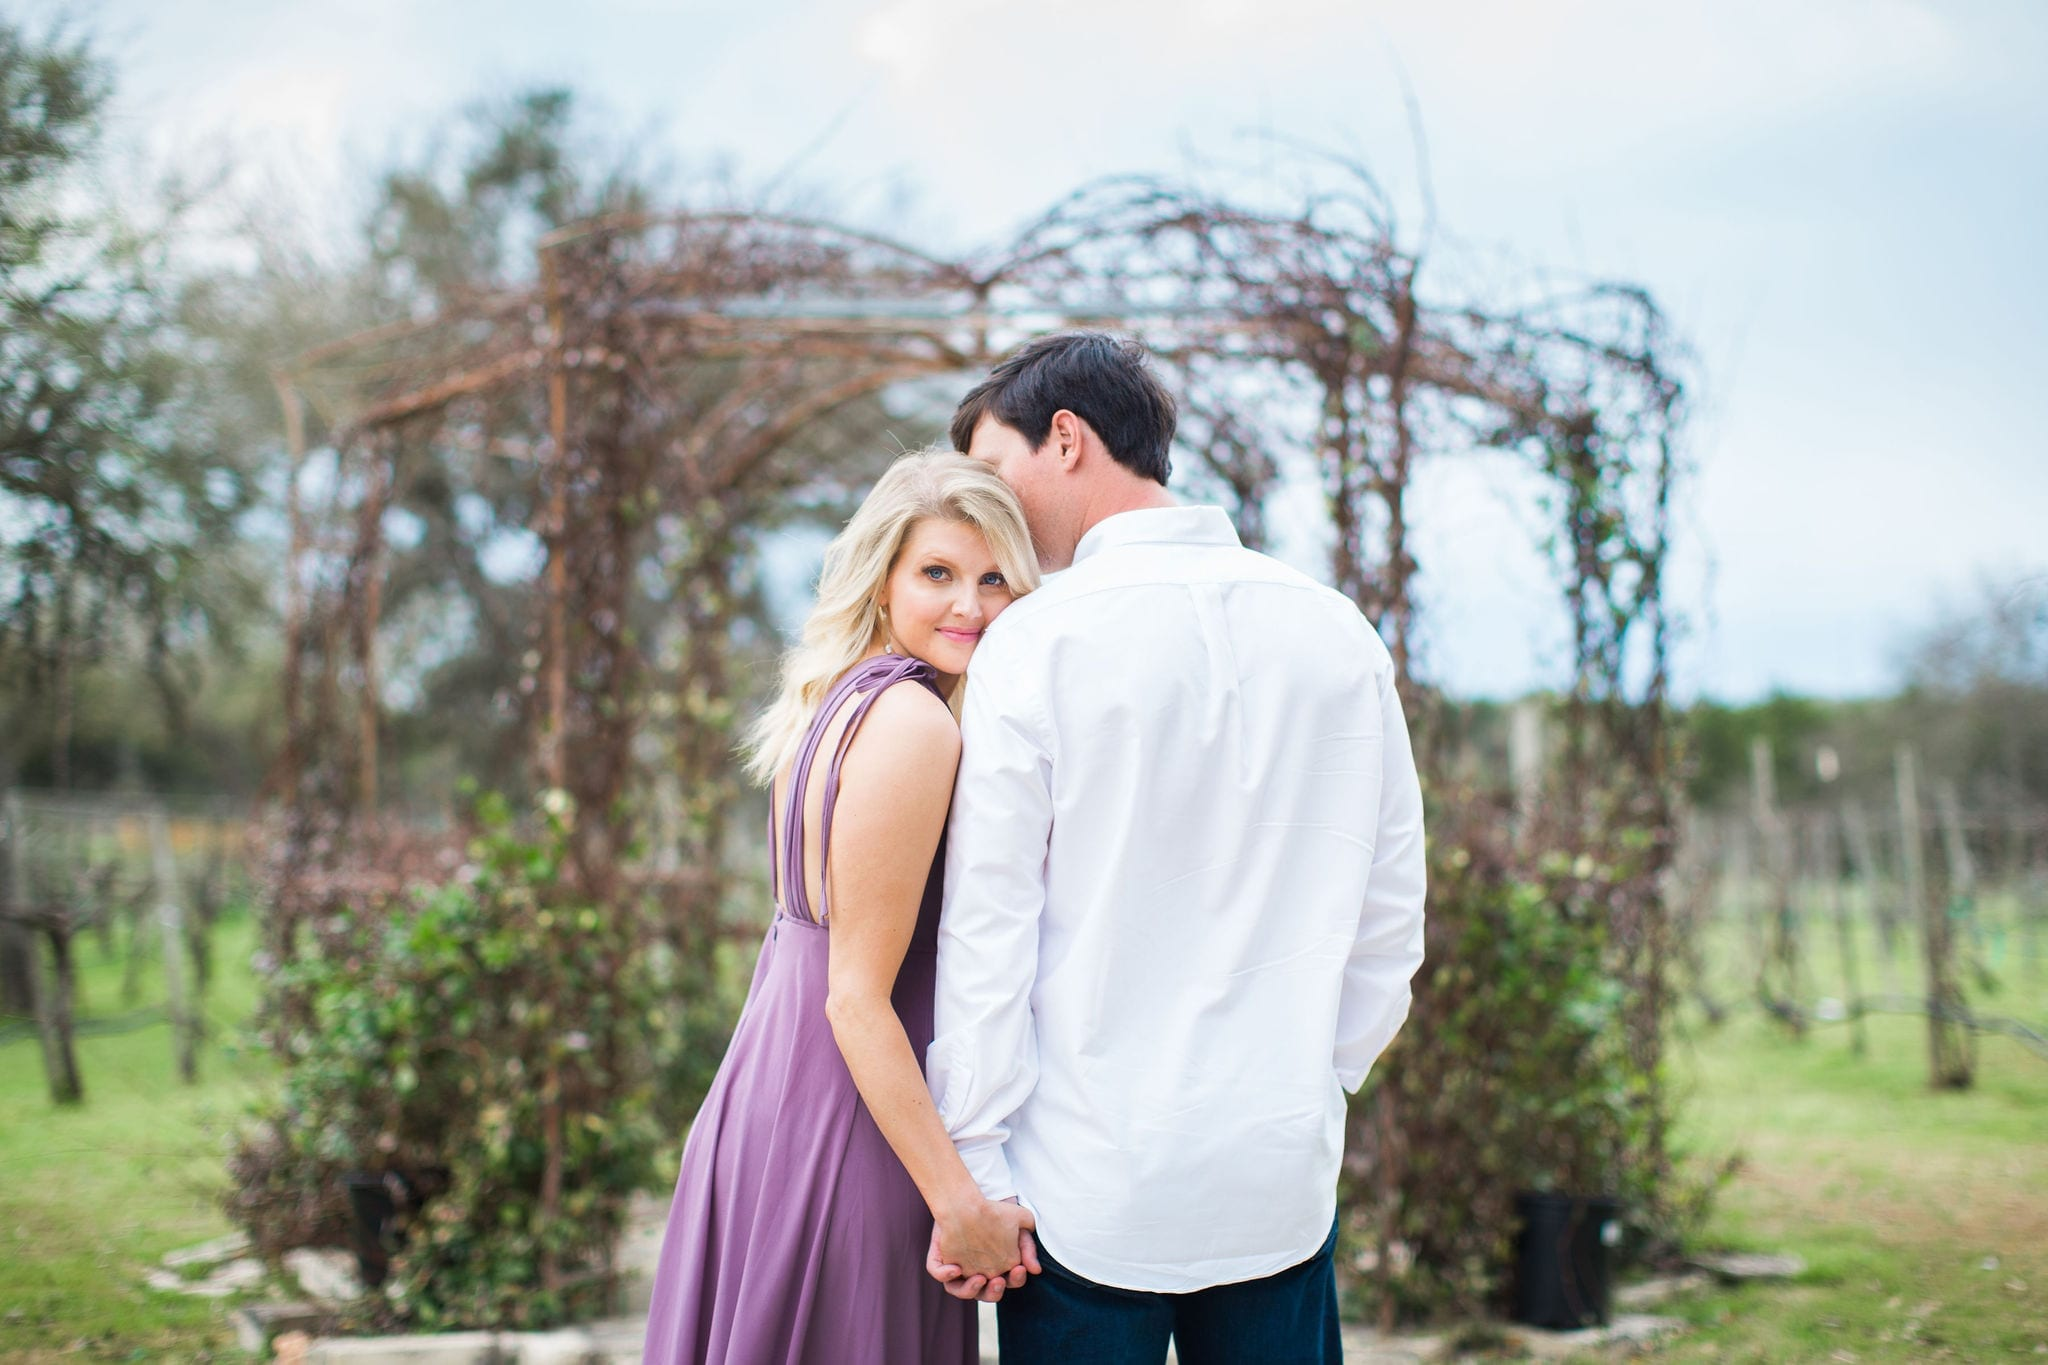 Michele Engagement session at Oak Valley Vineyards backs by gazebo